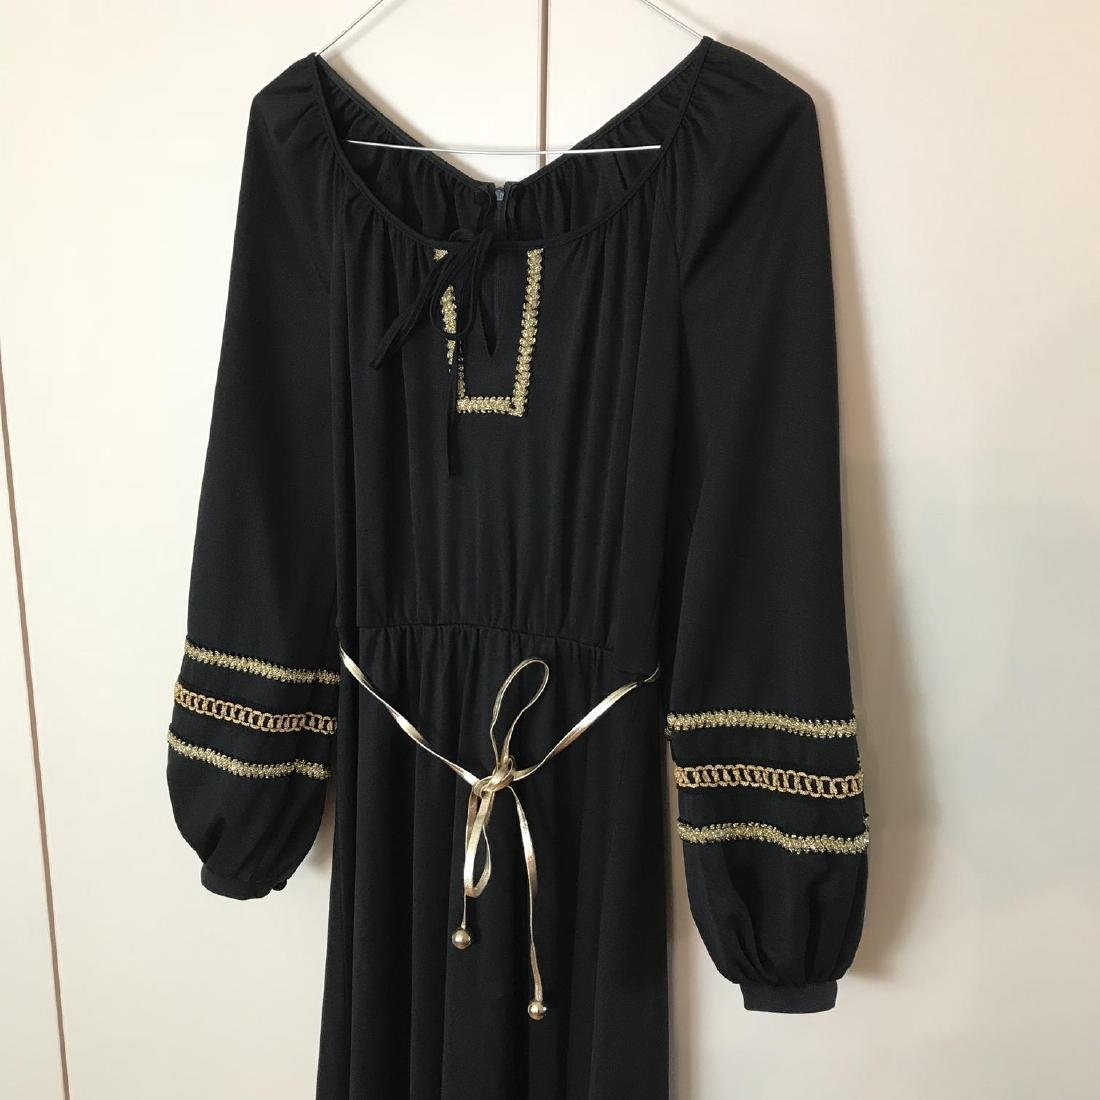 Betty Barclay Black / Gold Vintage Designer Dress - 5